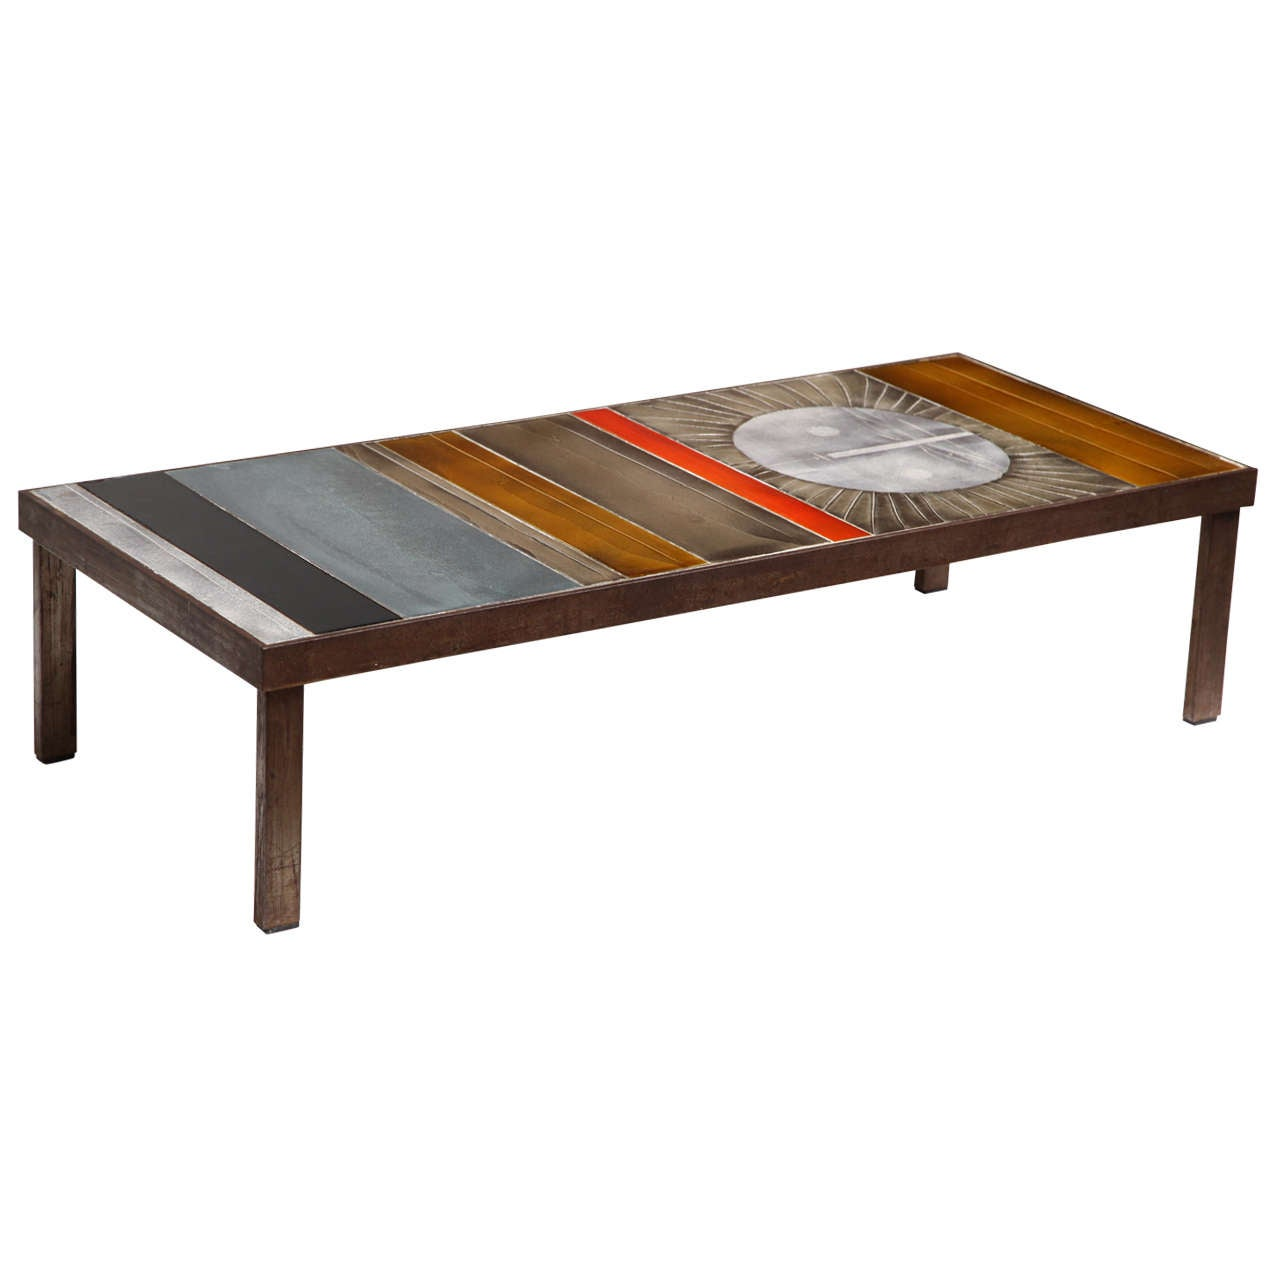 for Tile top coffee table